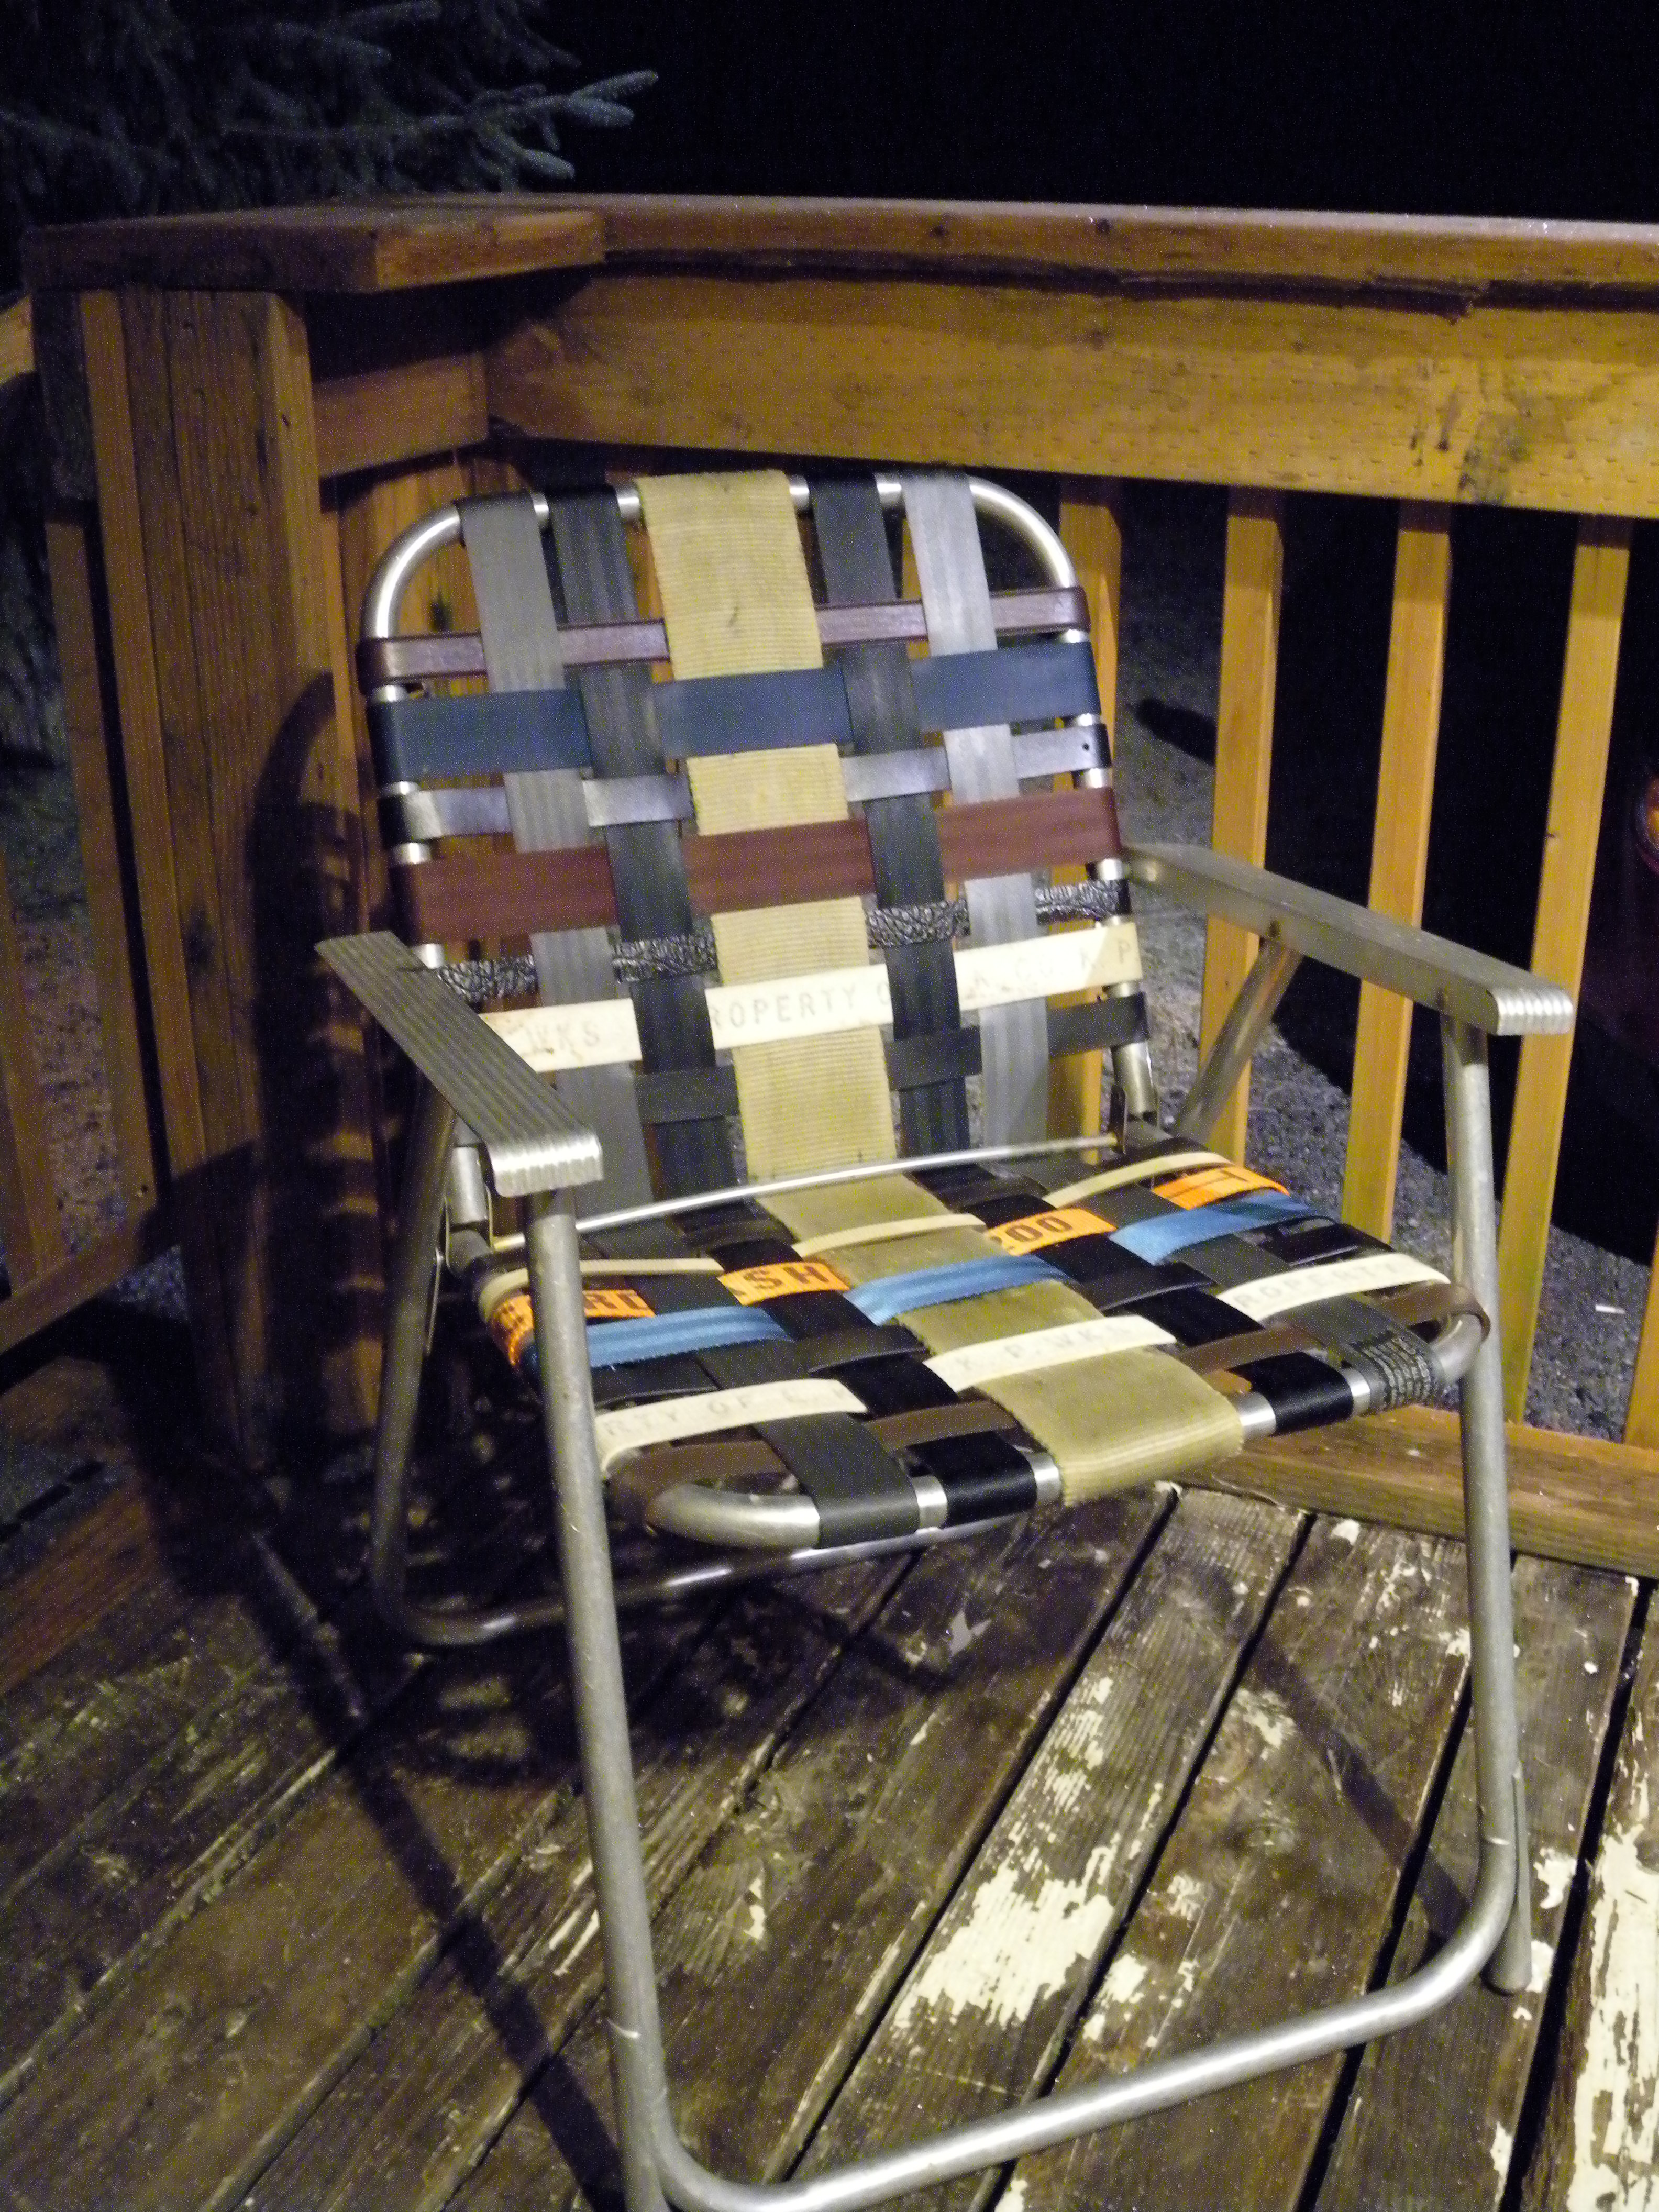 Refurbished Folding Lawn Chair With Repurposed Materials 10 Steps With Pictures Instructables